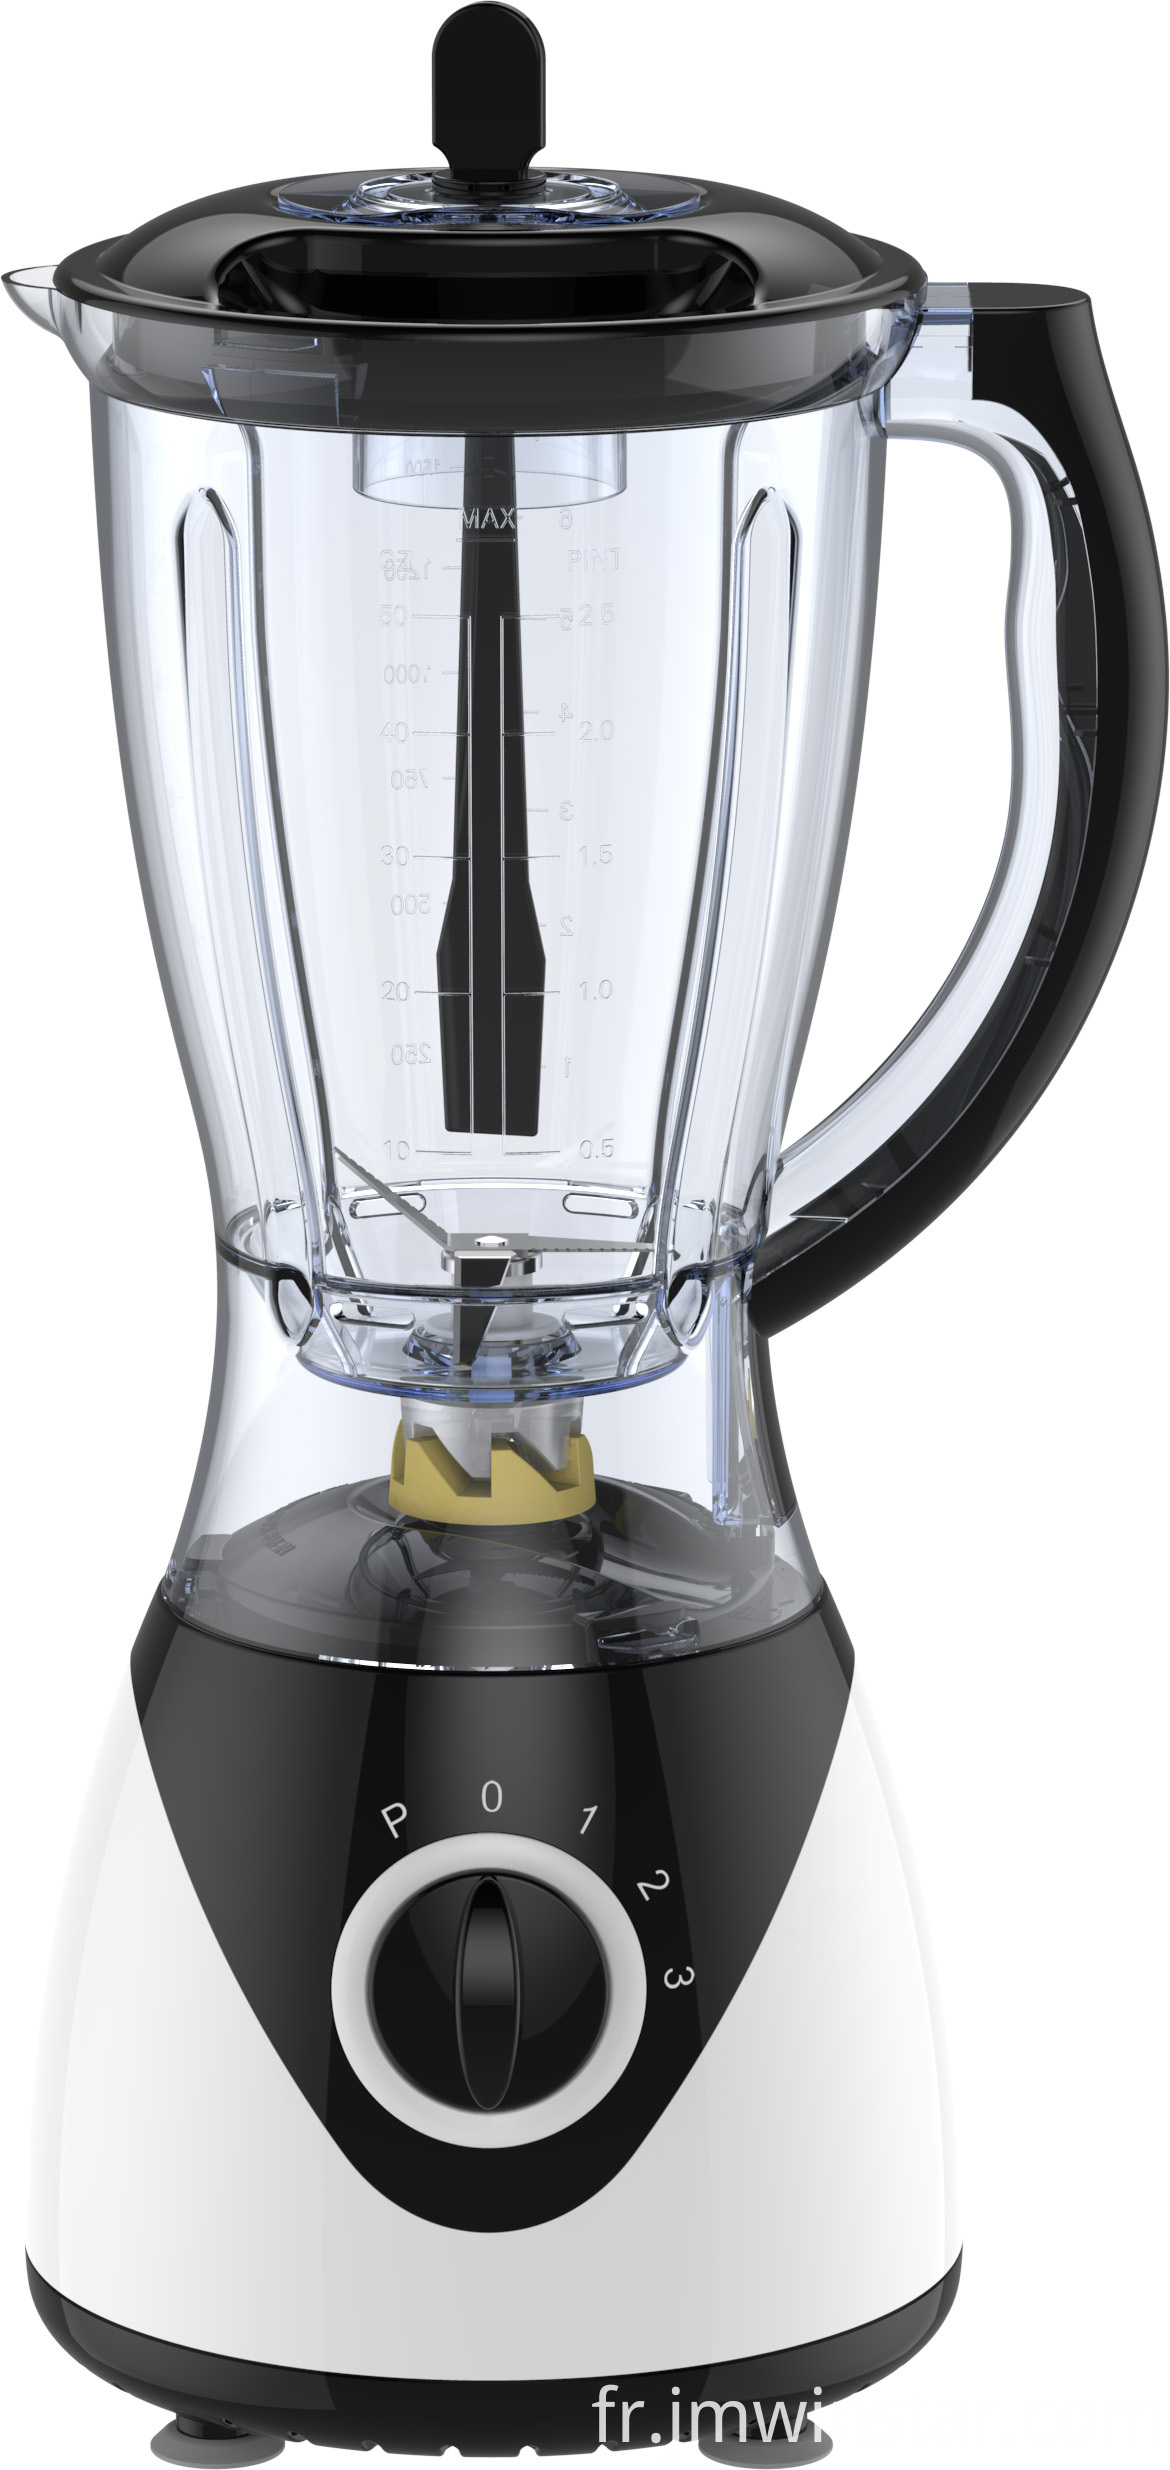 Stainless Steel Blender